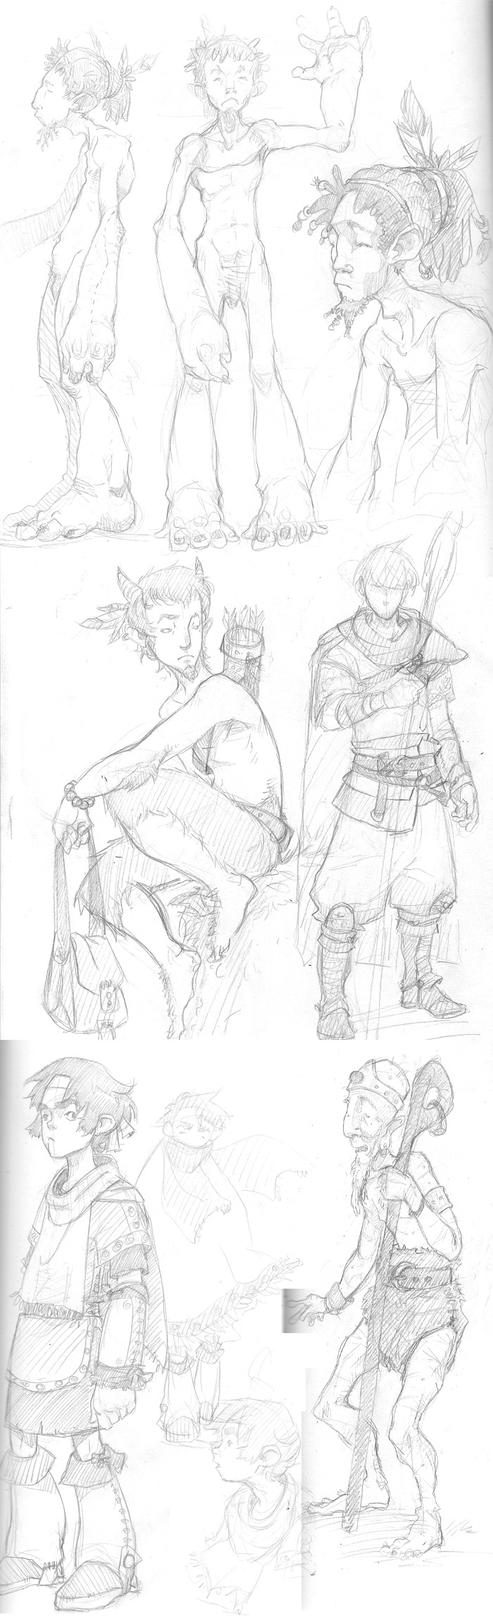 Sketches Jan 2011 by poxel